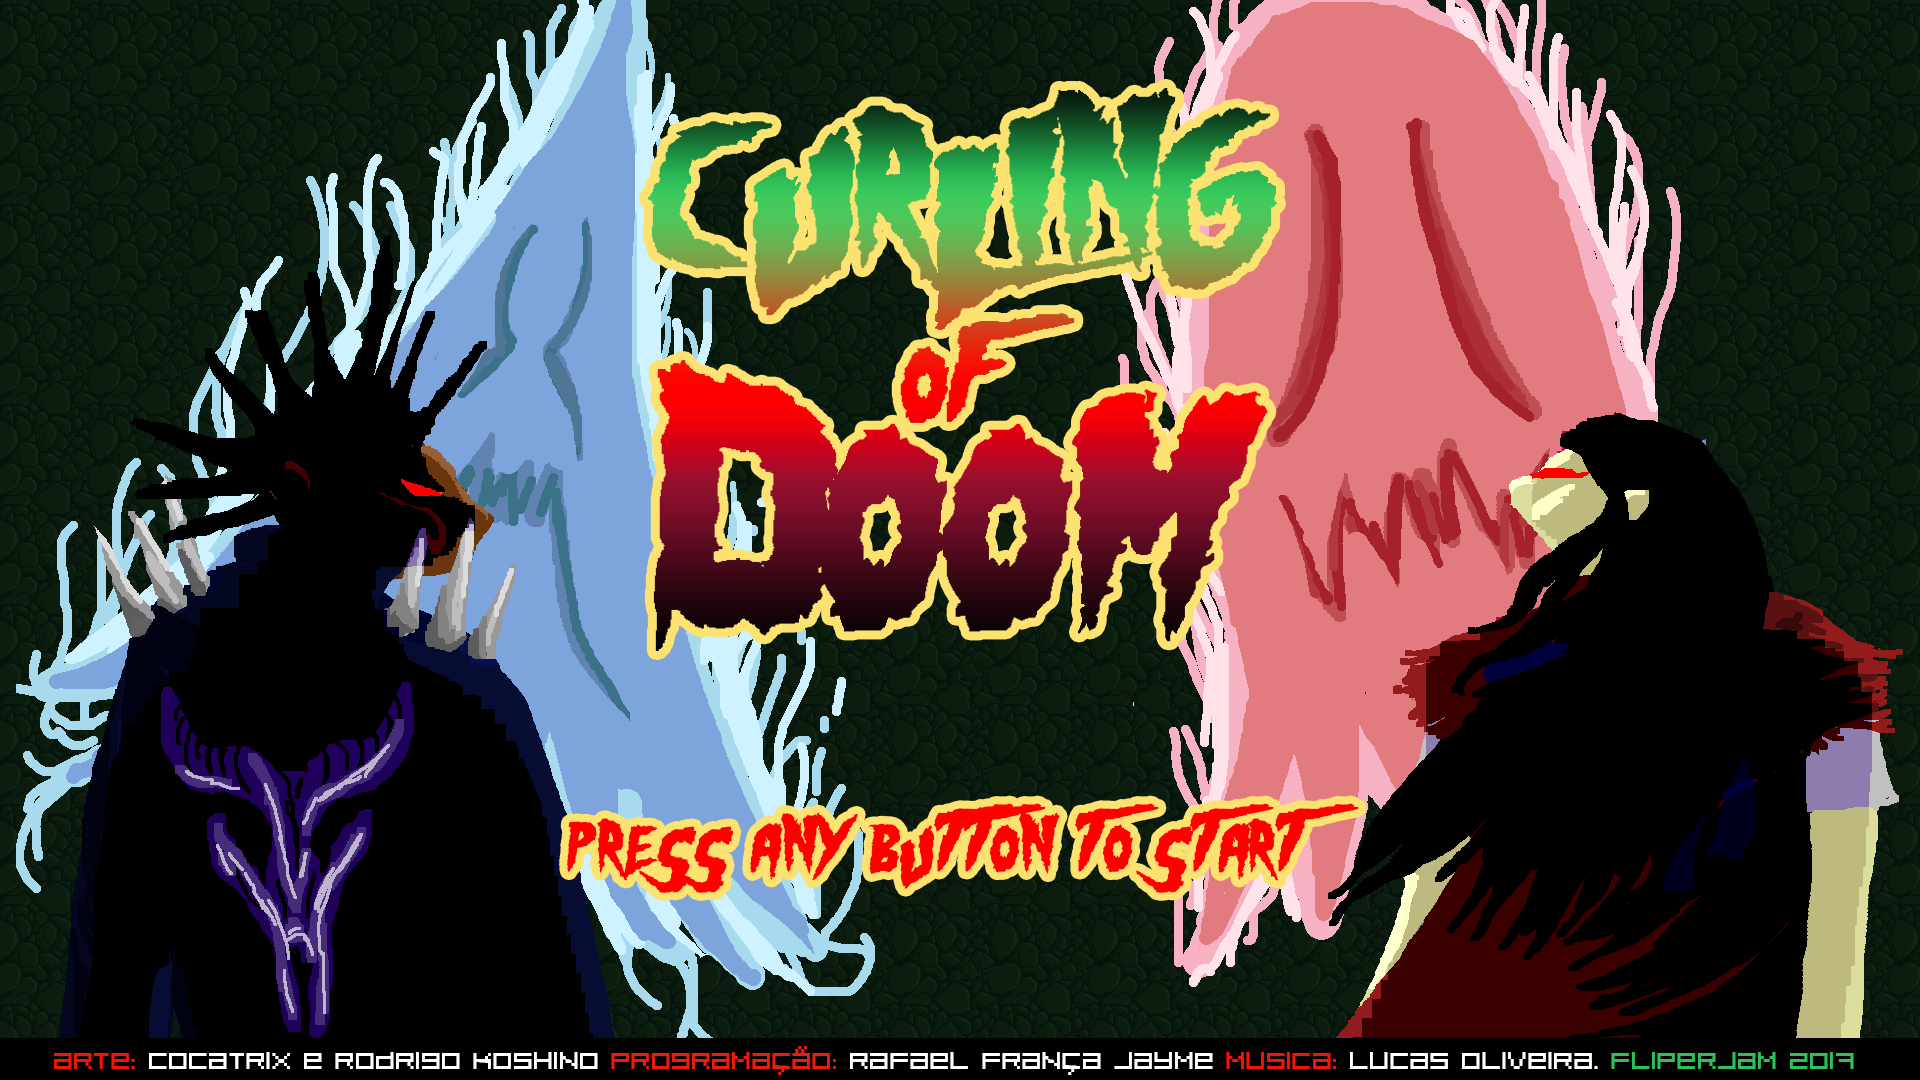 Curling of Doom